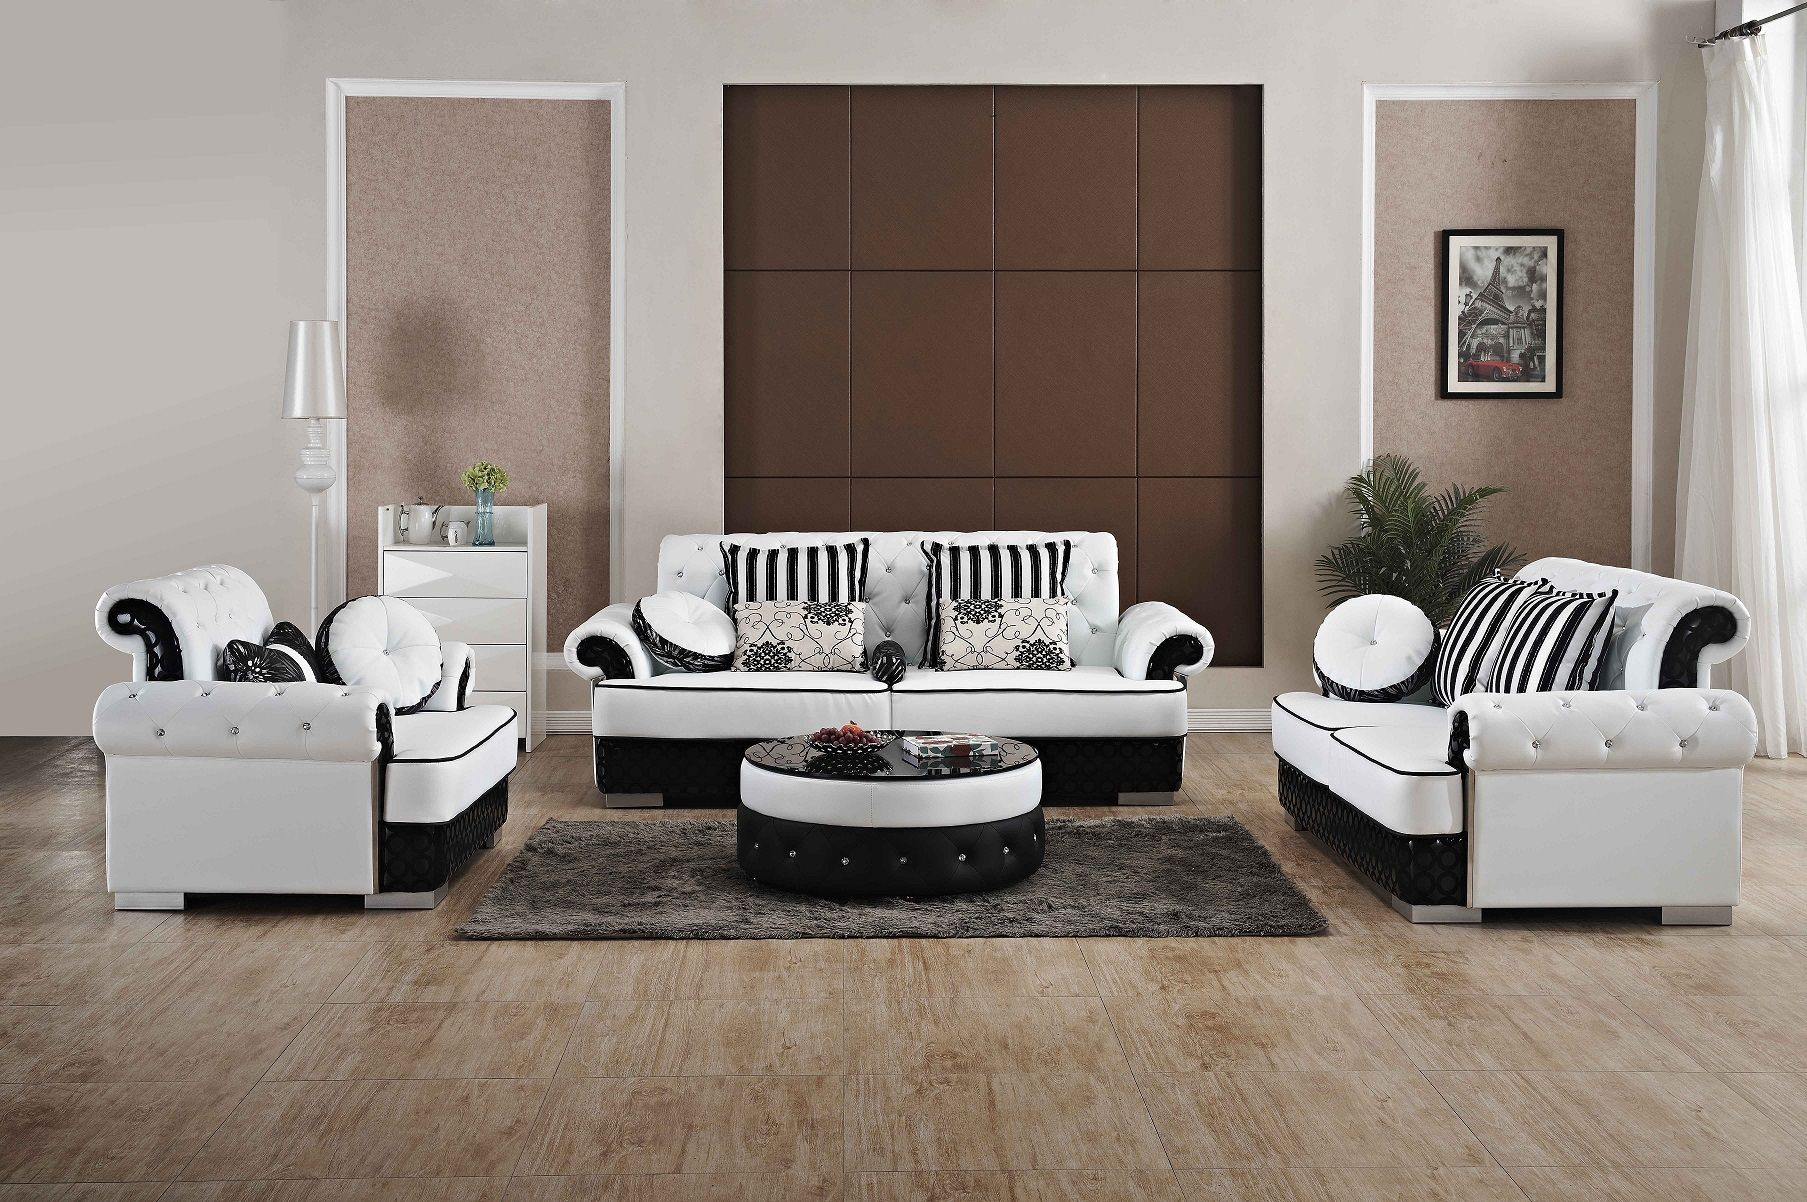 polsterm bel polsterm bel modell j607die m bel aus italien. Black Bedroom Furniture Sets. Home Design Ideas